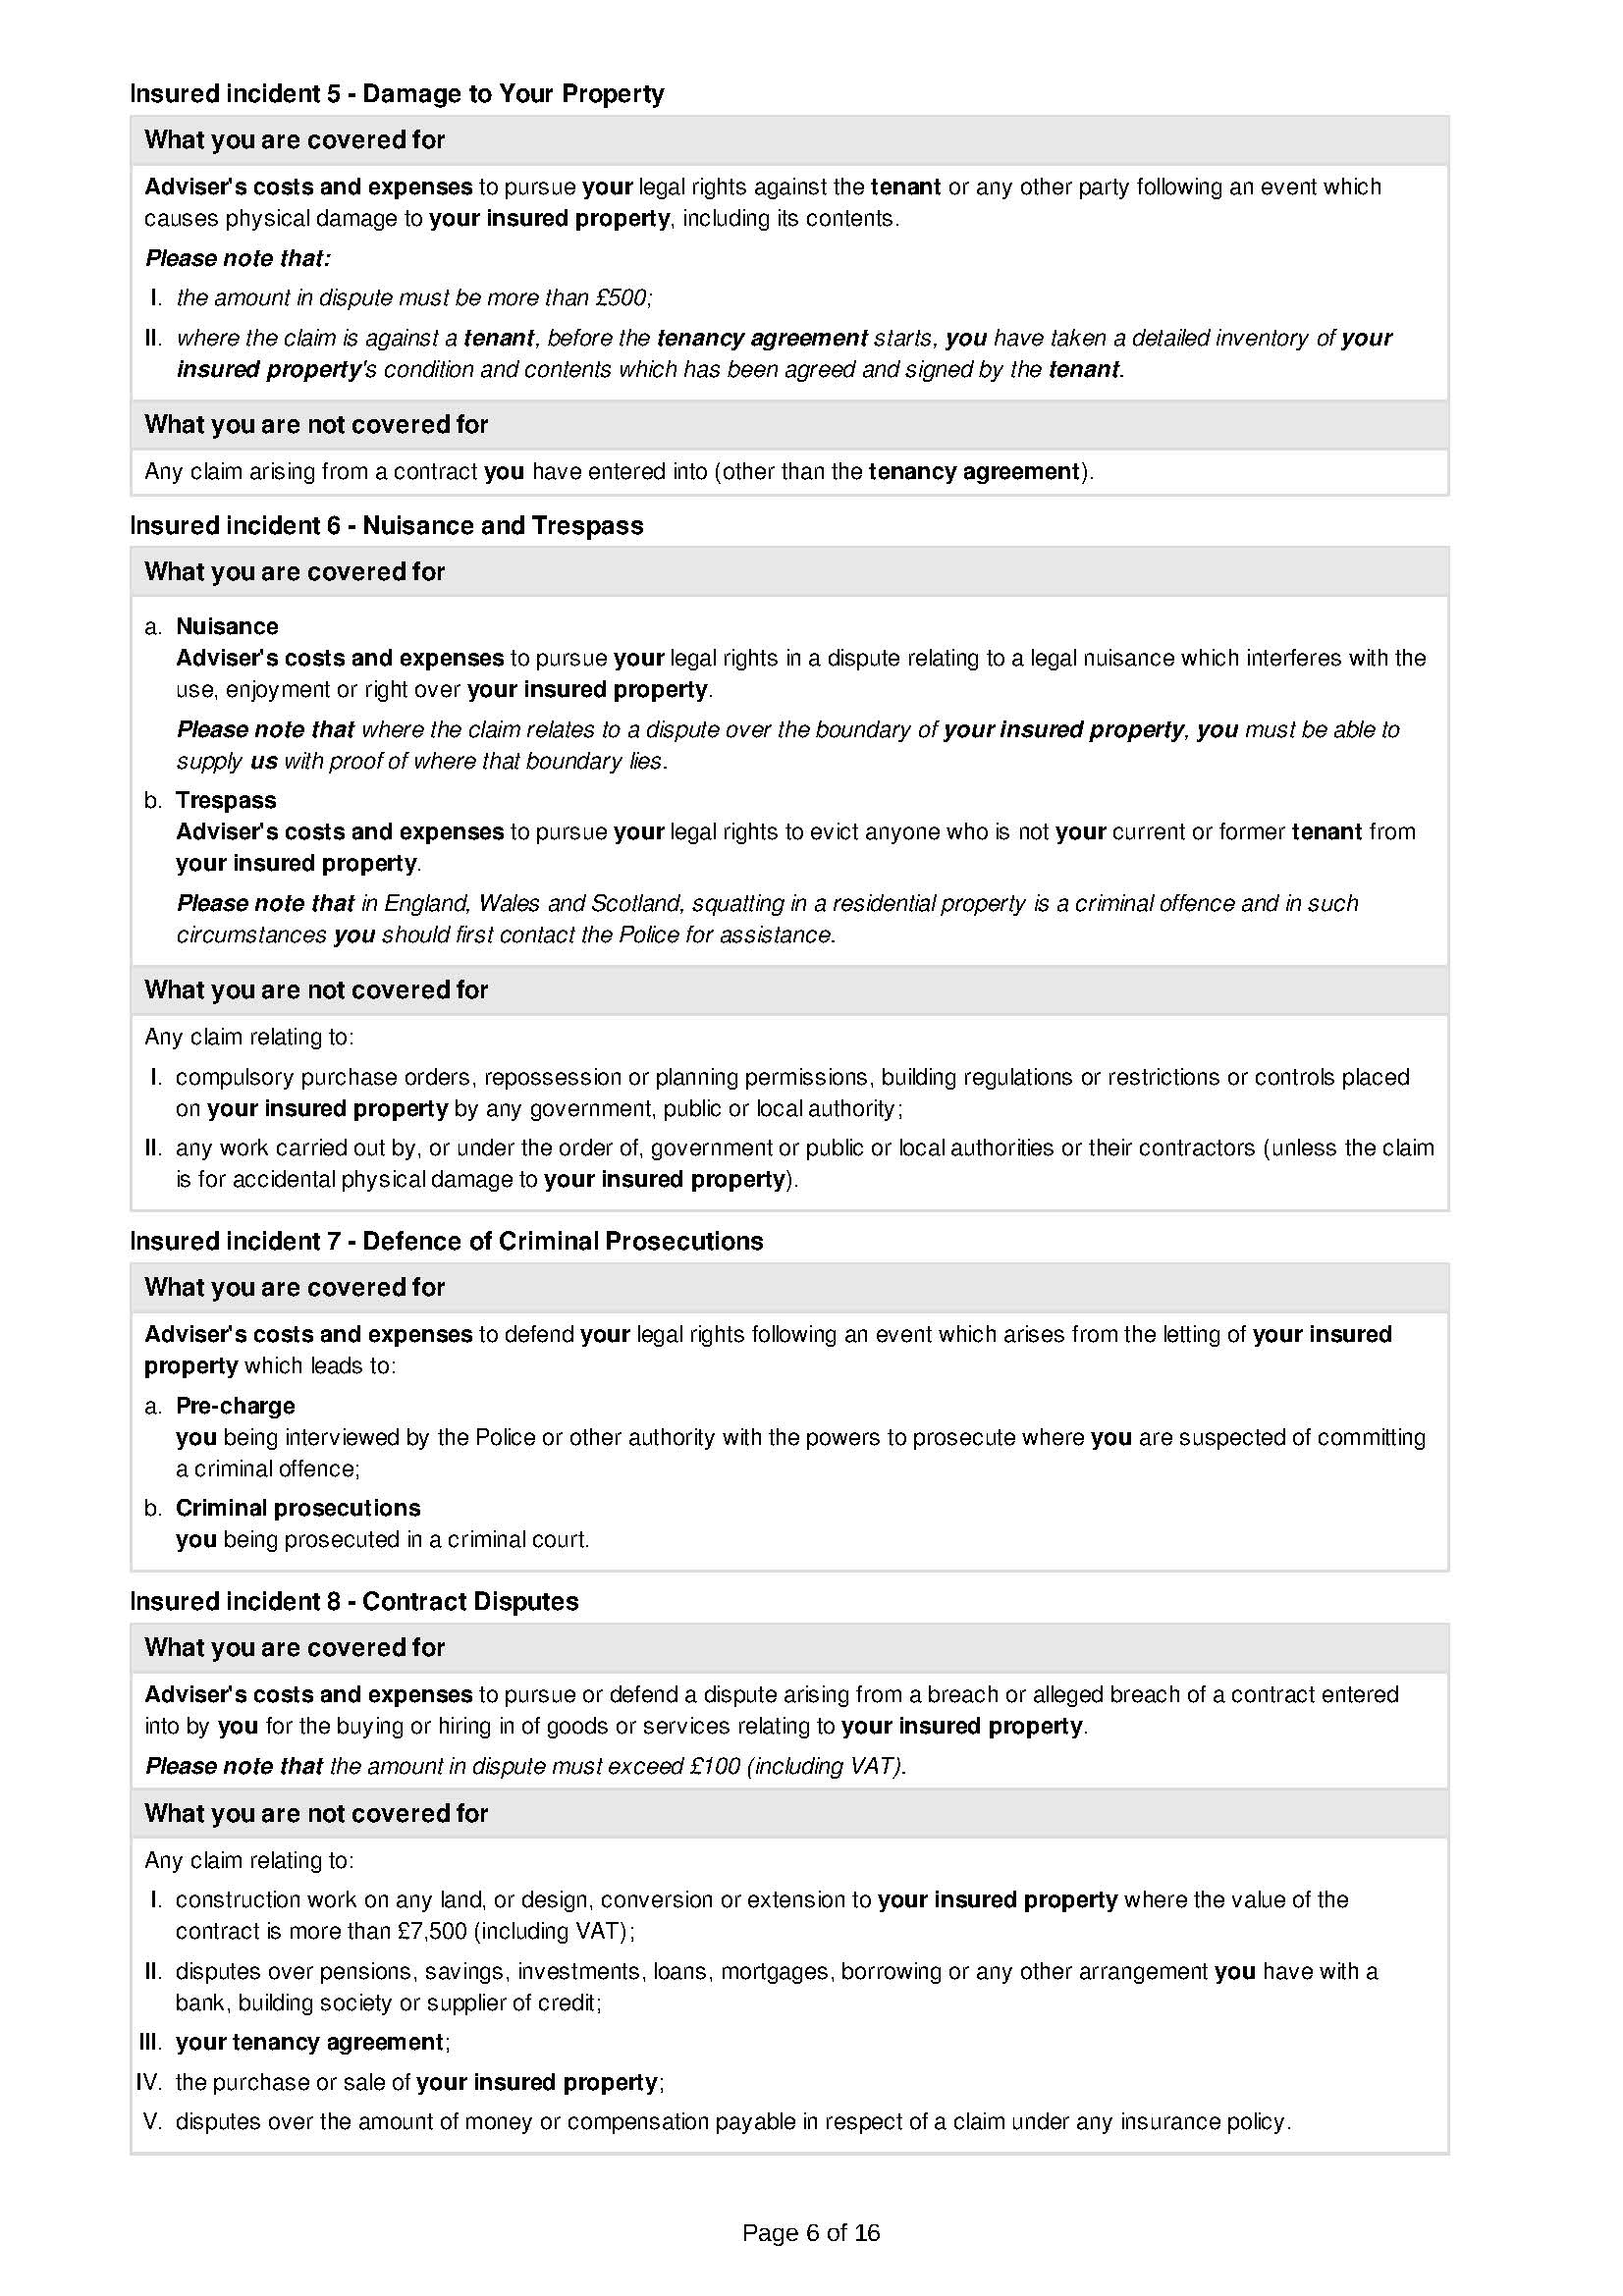 insurance_policy_02_page_06